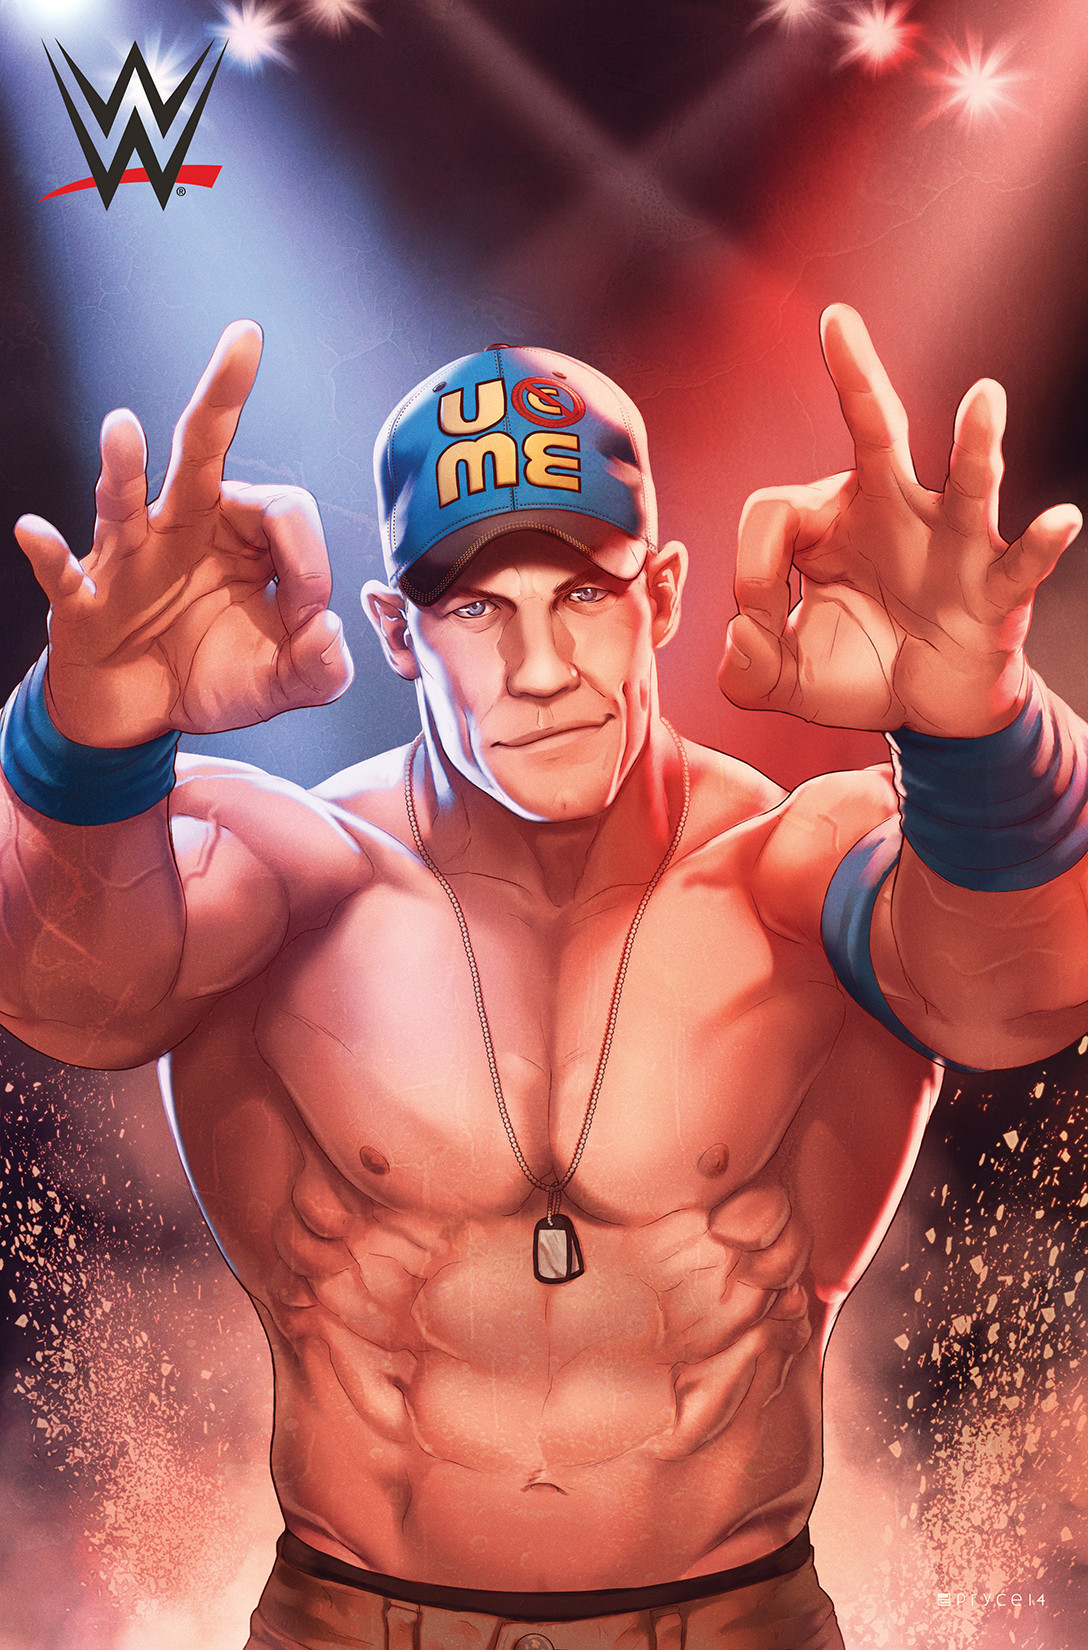 An illustration of John Cena by Jamal Campbell.